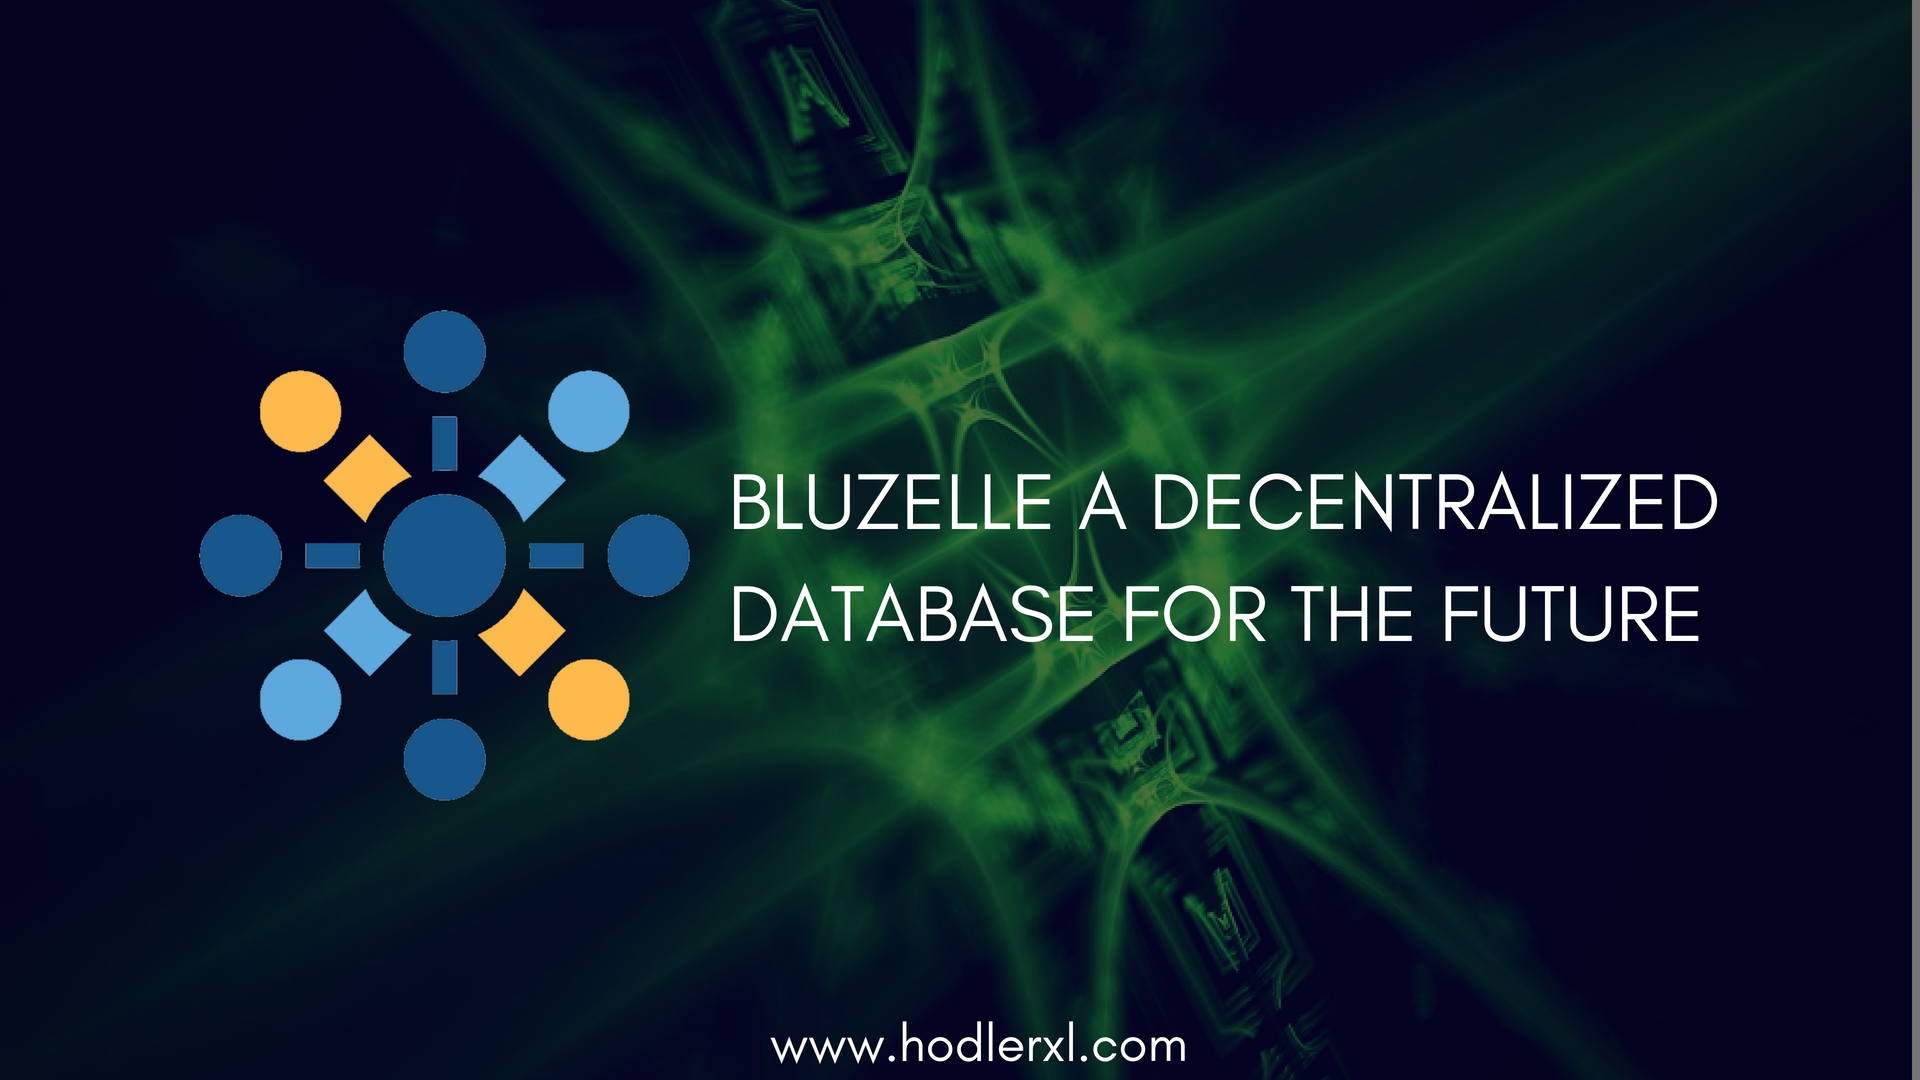 Bluzelle A Decentralized Database For The Future